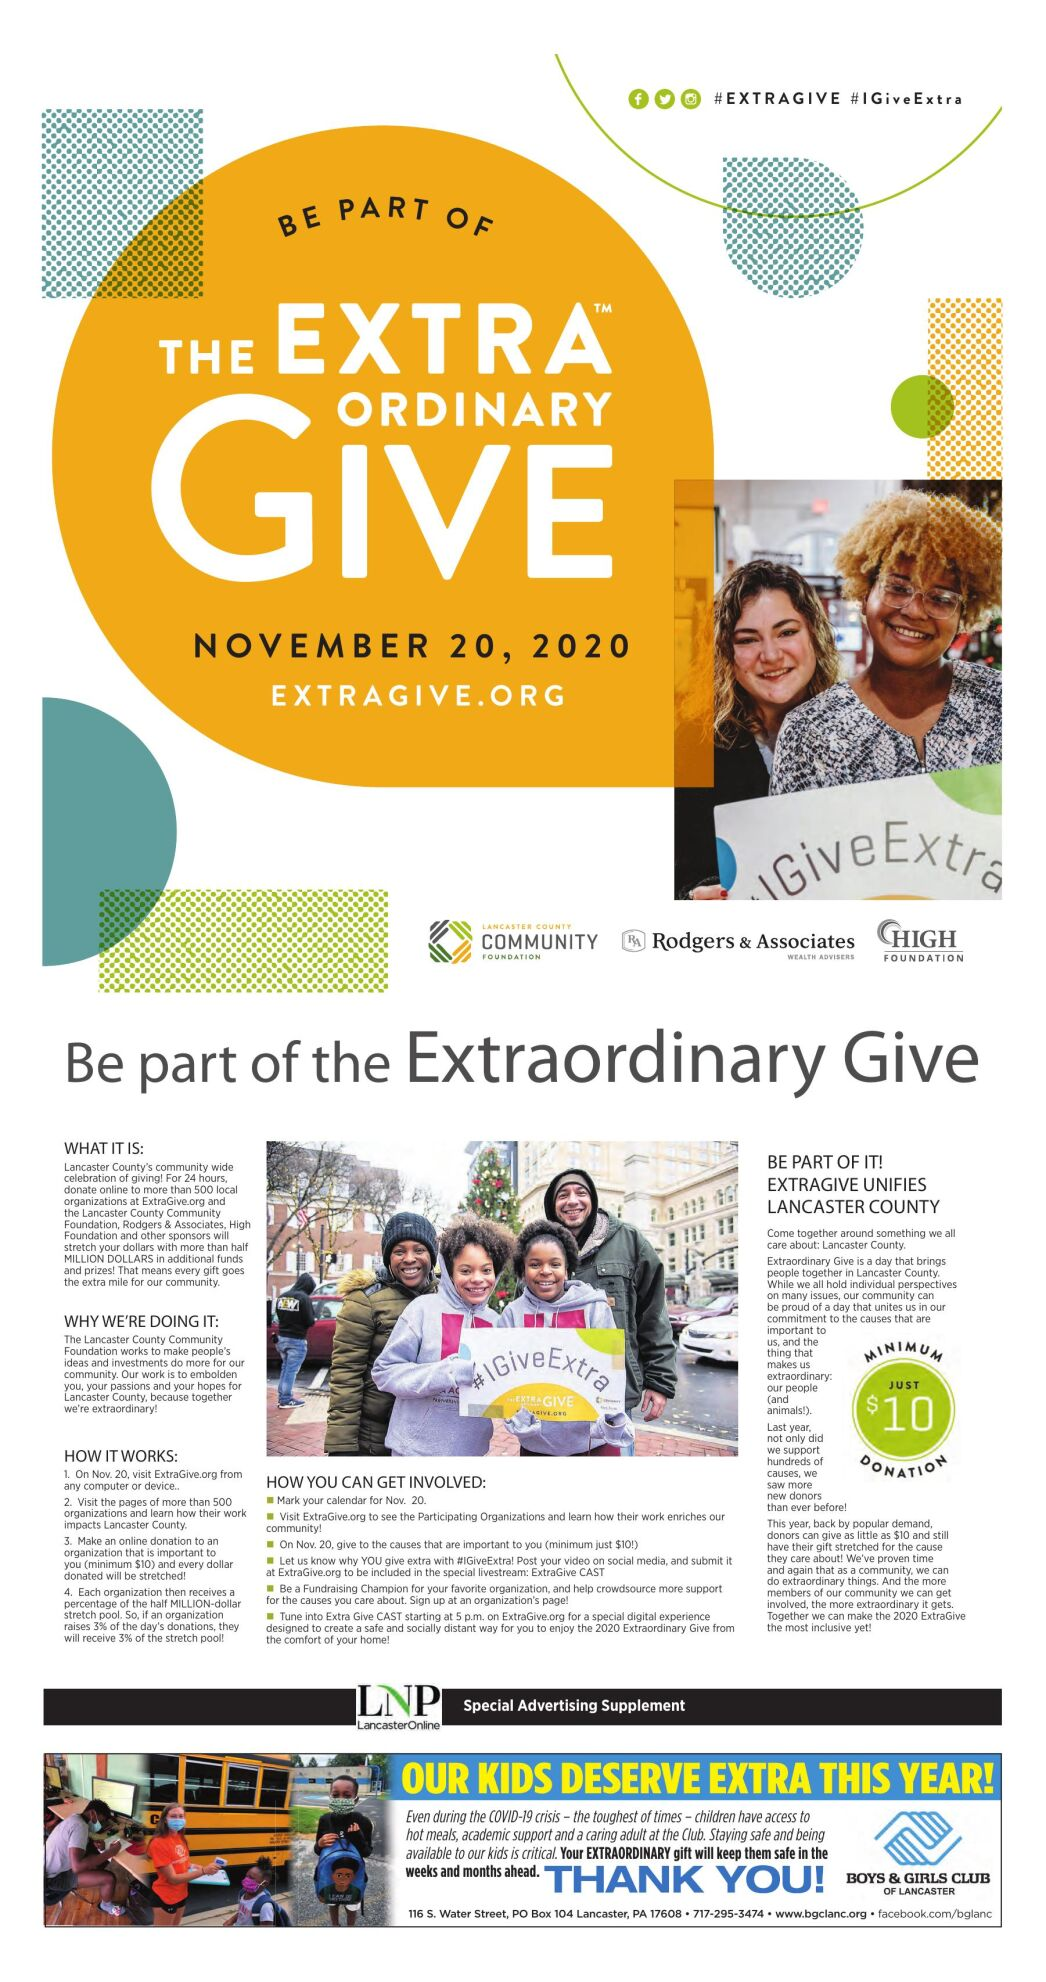 The Extraordinary Give 2020